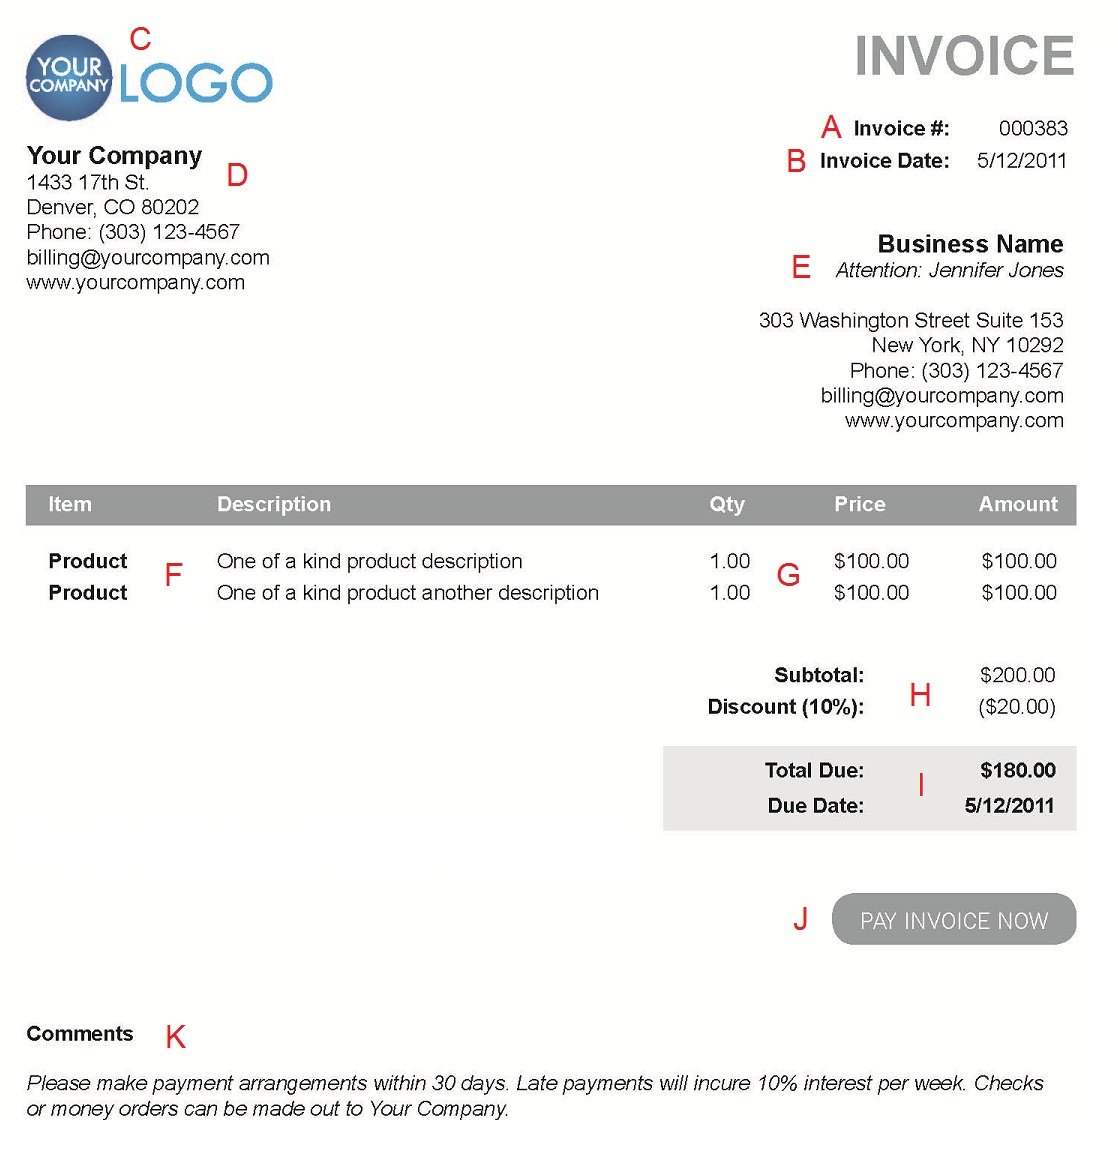 Atvingus  Winsome The  Different Sections Of An Electronic Payment Invoice With Exciting A  With Cute Acknowledgement Of Receipt Of Letter Also Receipts And Payment In Addition Dymo Receipt Printer And Receipt For Shepards Pie As Well As Word Receipt Additionally Money Receipt Format Word From Paysimplecom With Atvingus  Exciting The  Different Sections Of An Electronic Payment Invoice With Cute A  And Winsome Acknowledgement Of Receipt Of Letter Also Receipts And Payment In Addition Dymo Receipt Printer From Paysimplecom